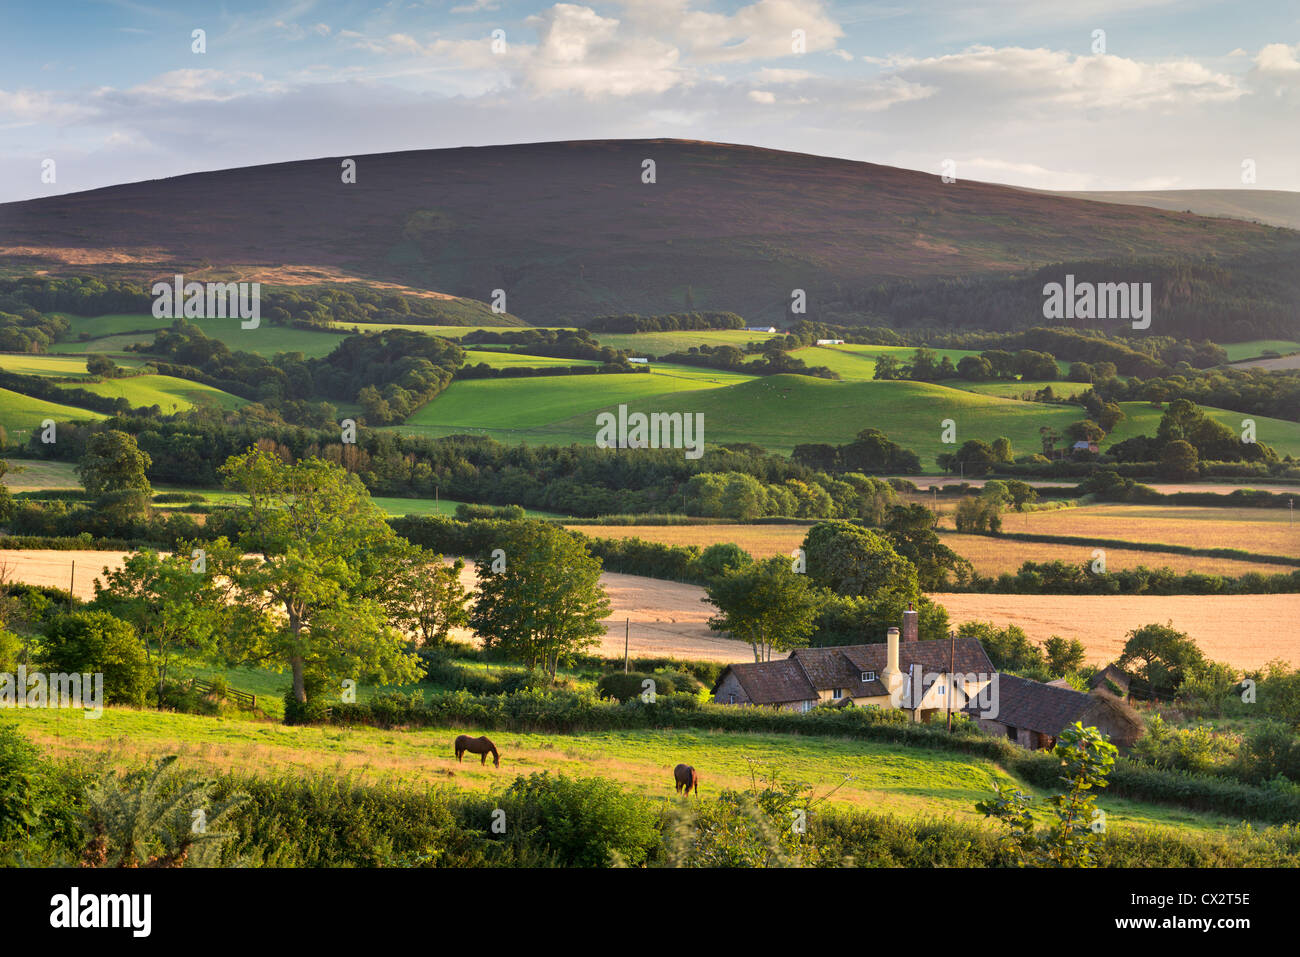 Farmhouse surrounded by rolling Exmoor countryside, Somerset, England. Summer (August) 2012. - Stock Image